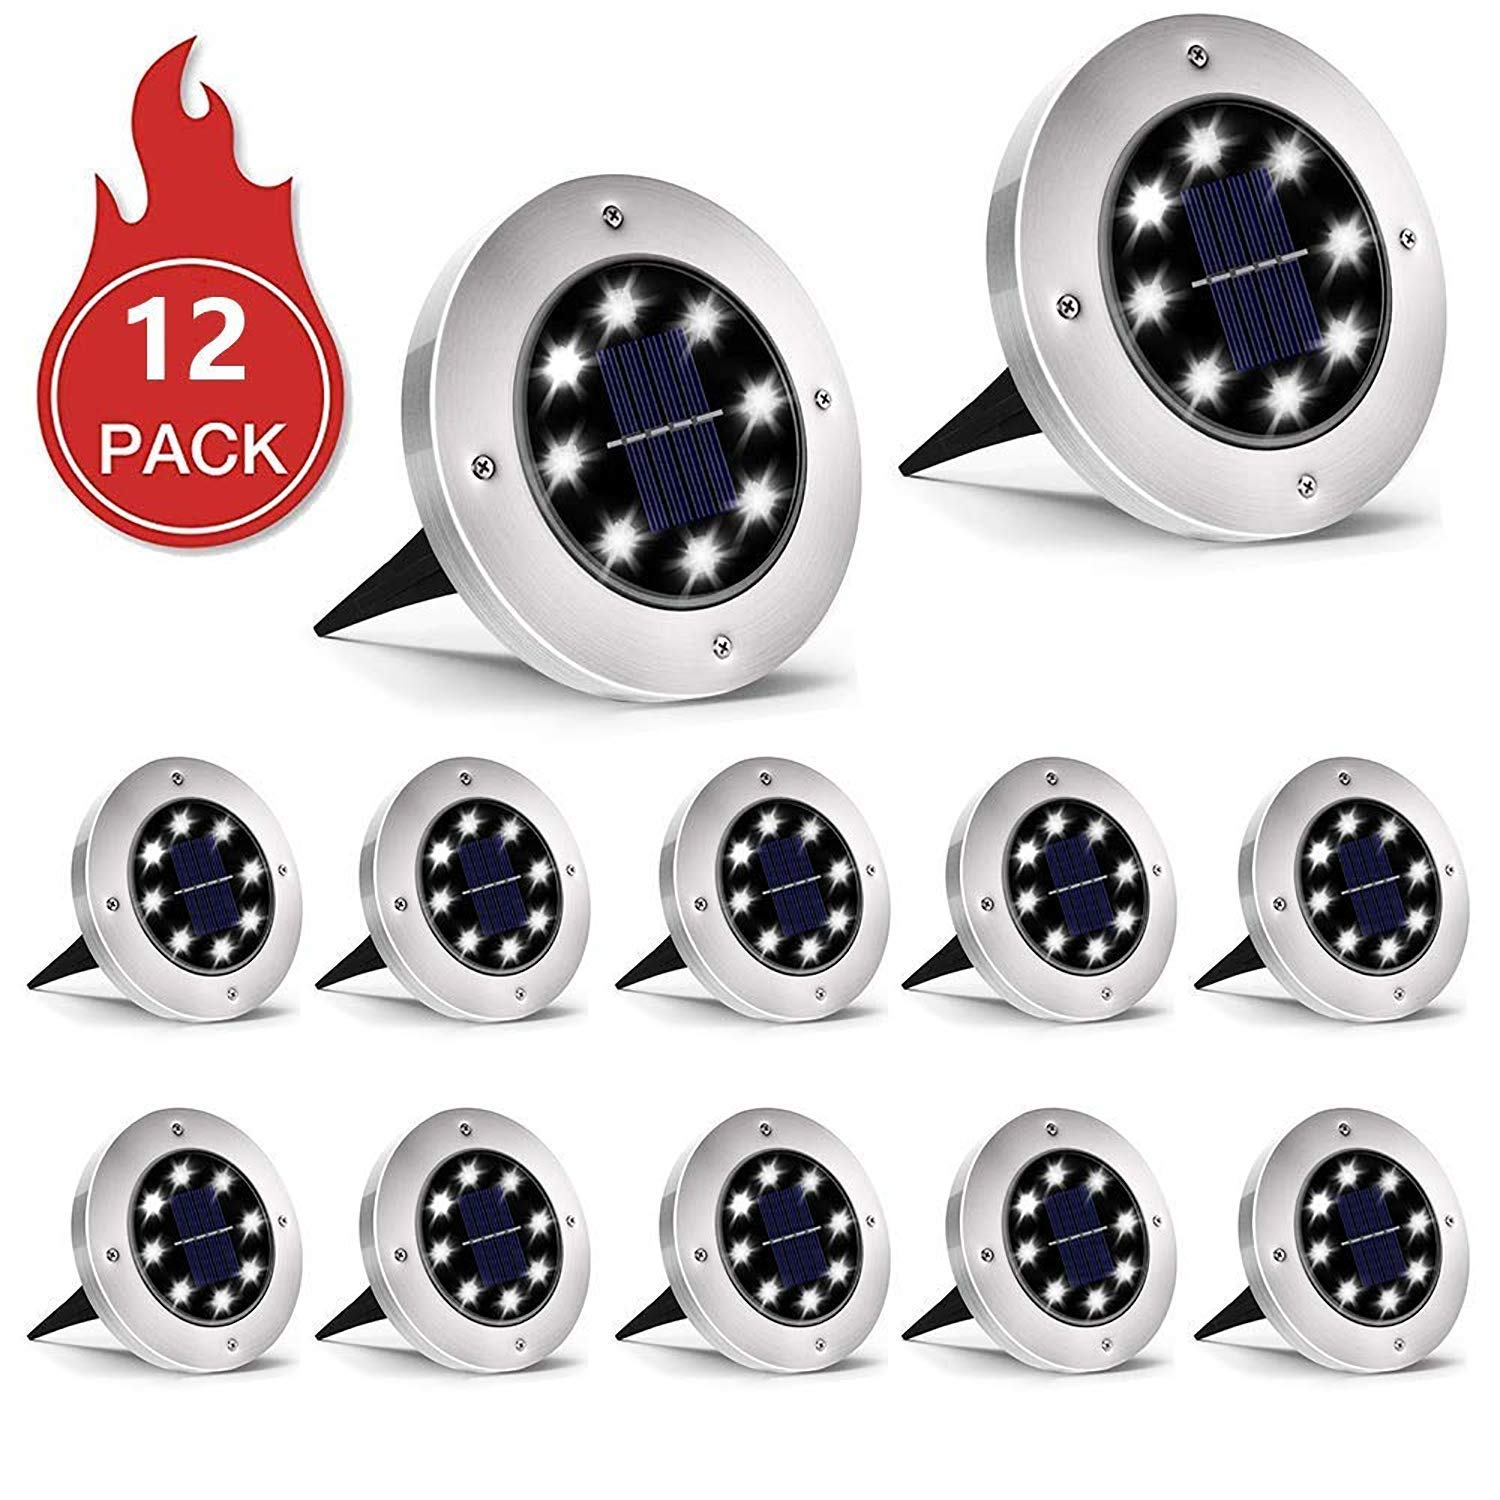 INCX Solar Ground Lights, 12 Packs 8 LED Solar Garden Lamp Waterproof In-Ground Outdoor Landscape Lighting for Patio Pathway Lawn Yard Deck Driveway Walkway White by INCX